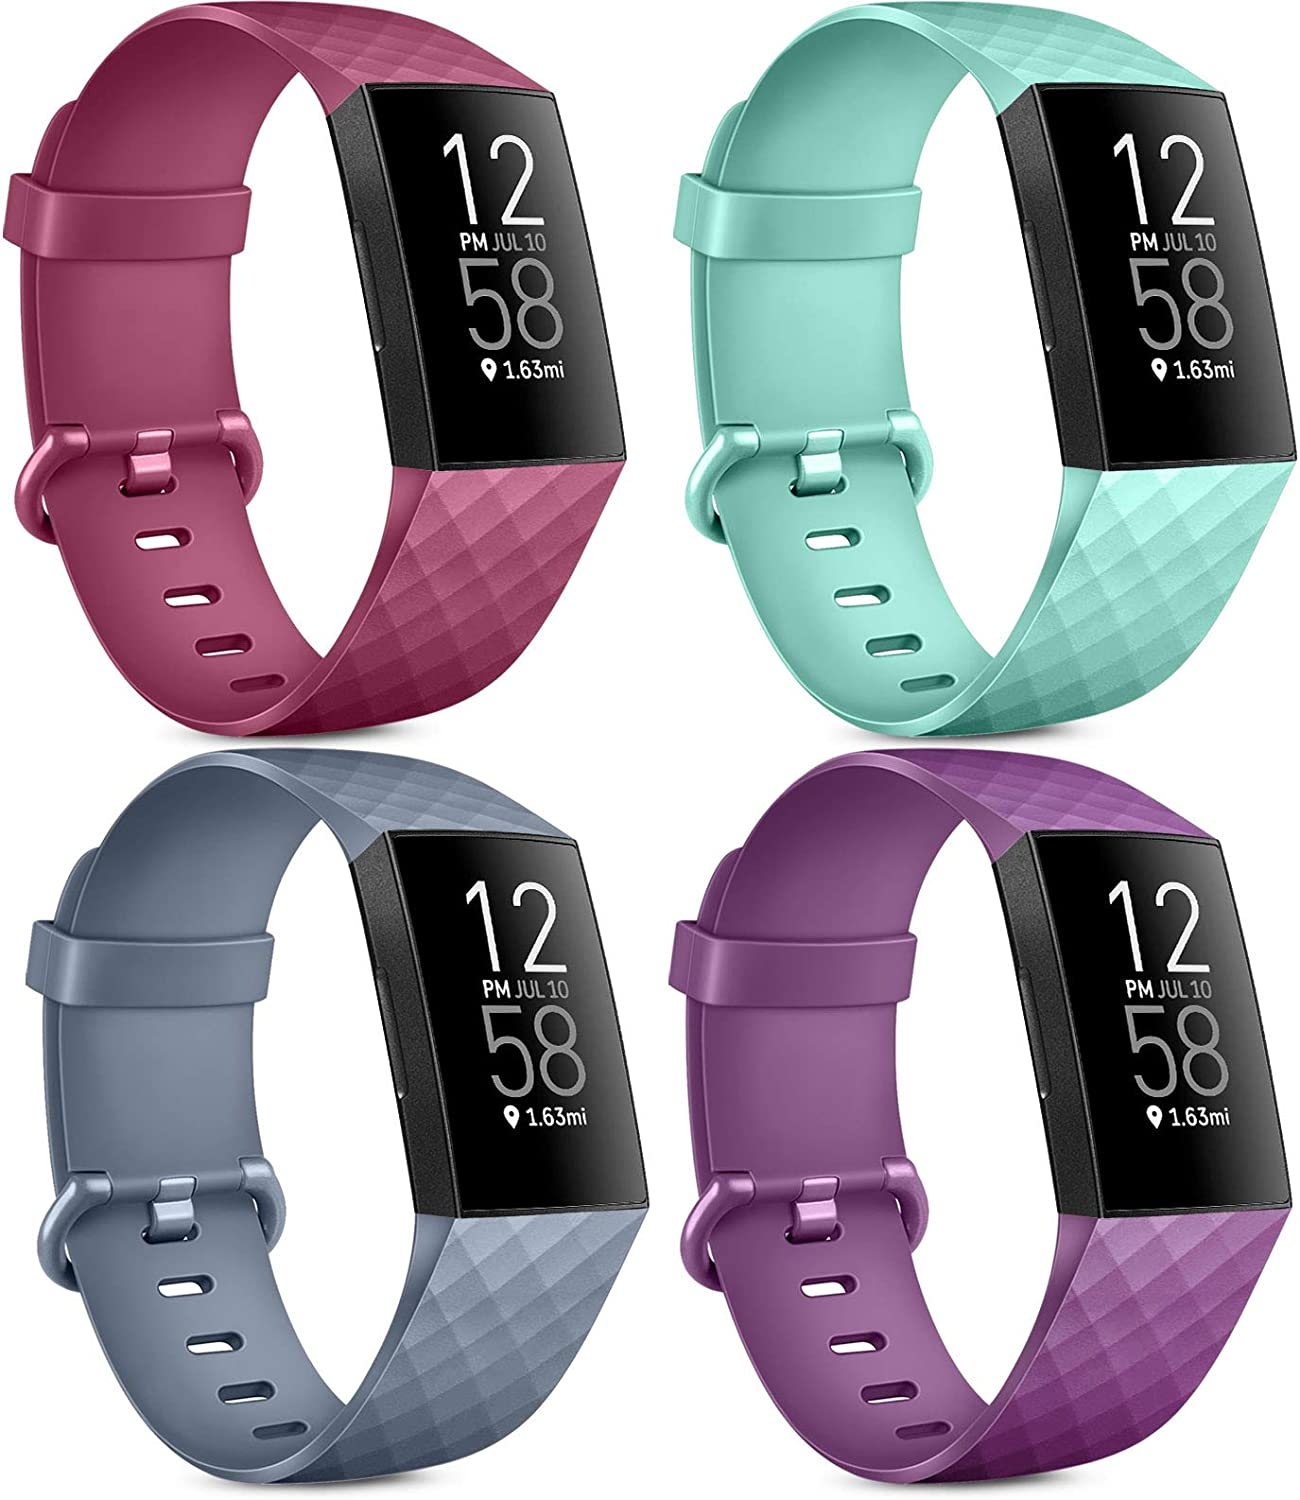 Pack 4 Silicone Bands for Fitbit Charge 4 / Fitbit Charge 3 / Charge 3 SE Soft WaterproofReplacement Wristbands for Women Men (No Tracker)(Small,Blue Grey+Wine Red+Purple+Mint Green)